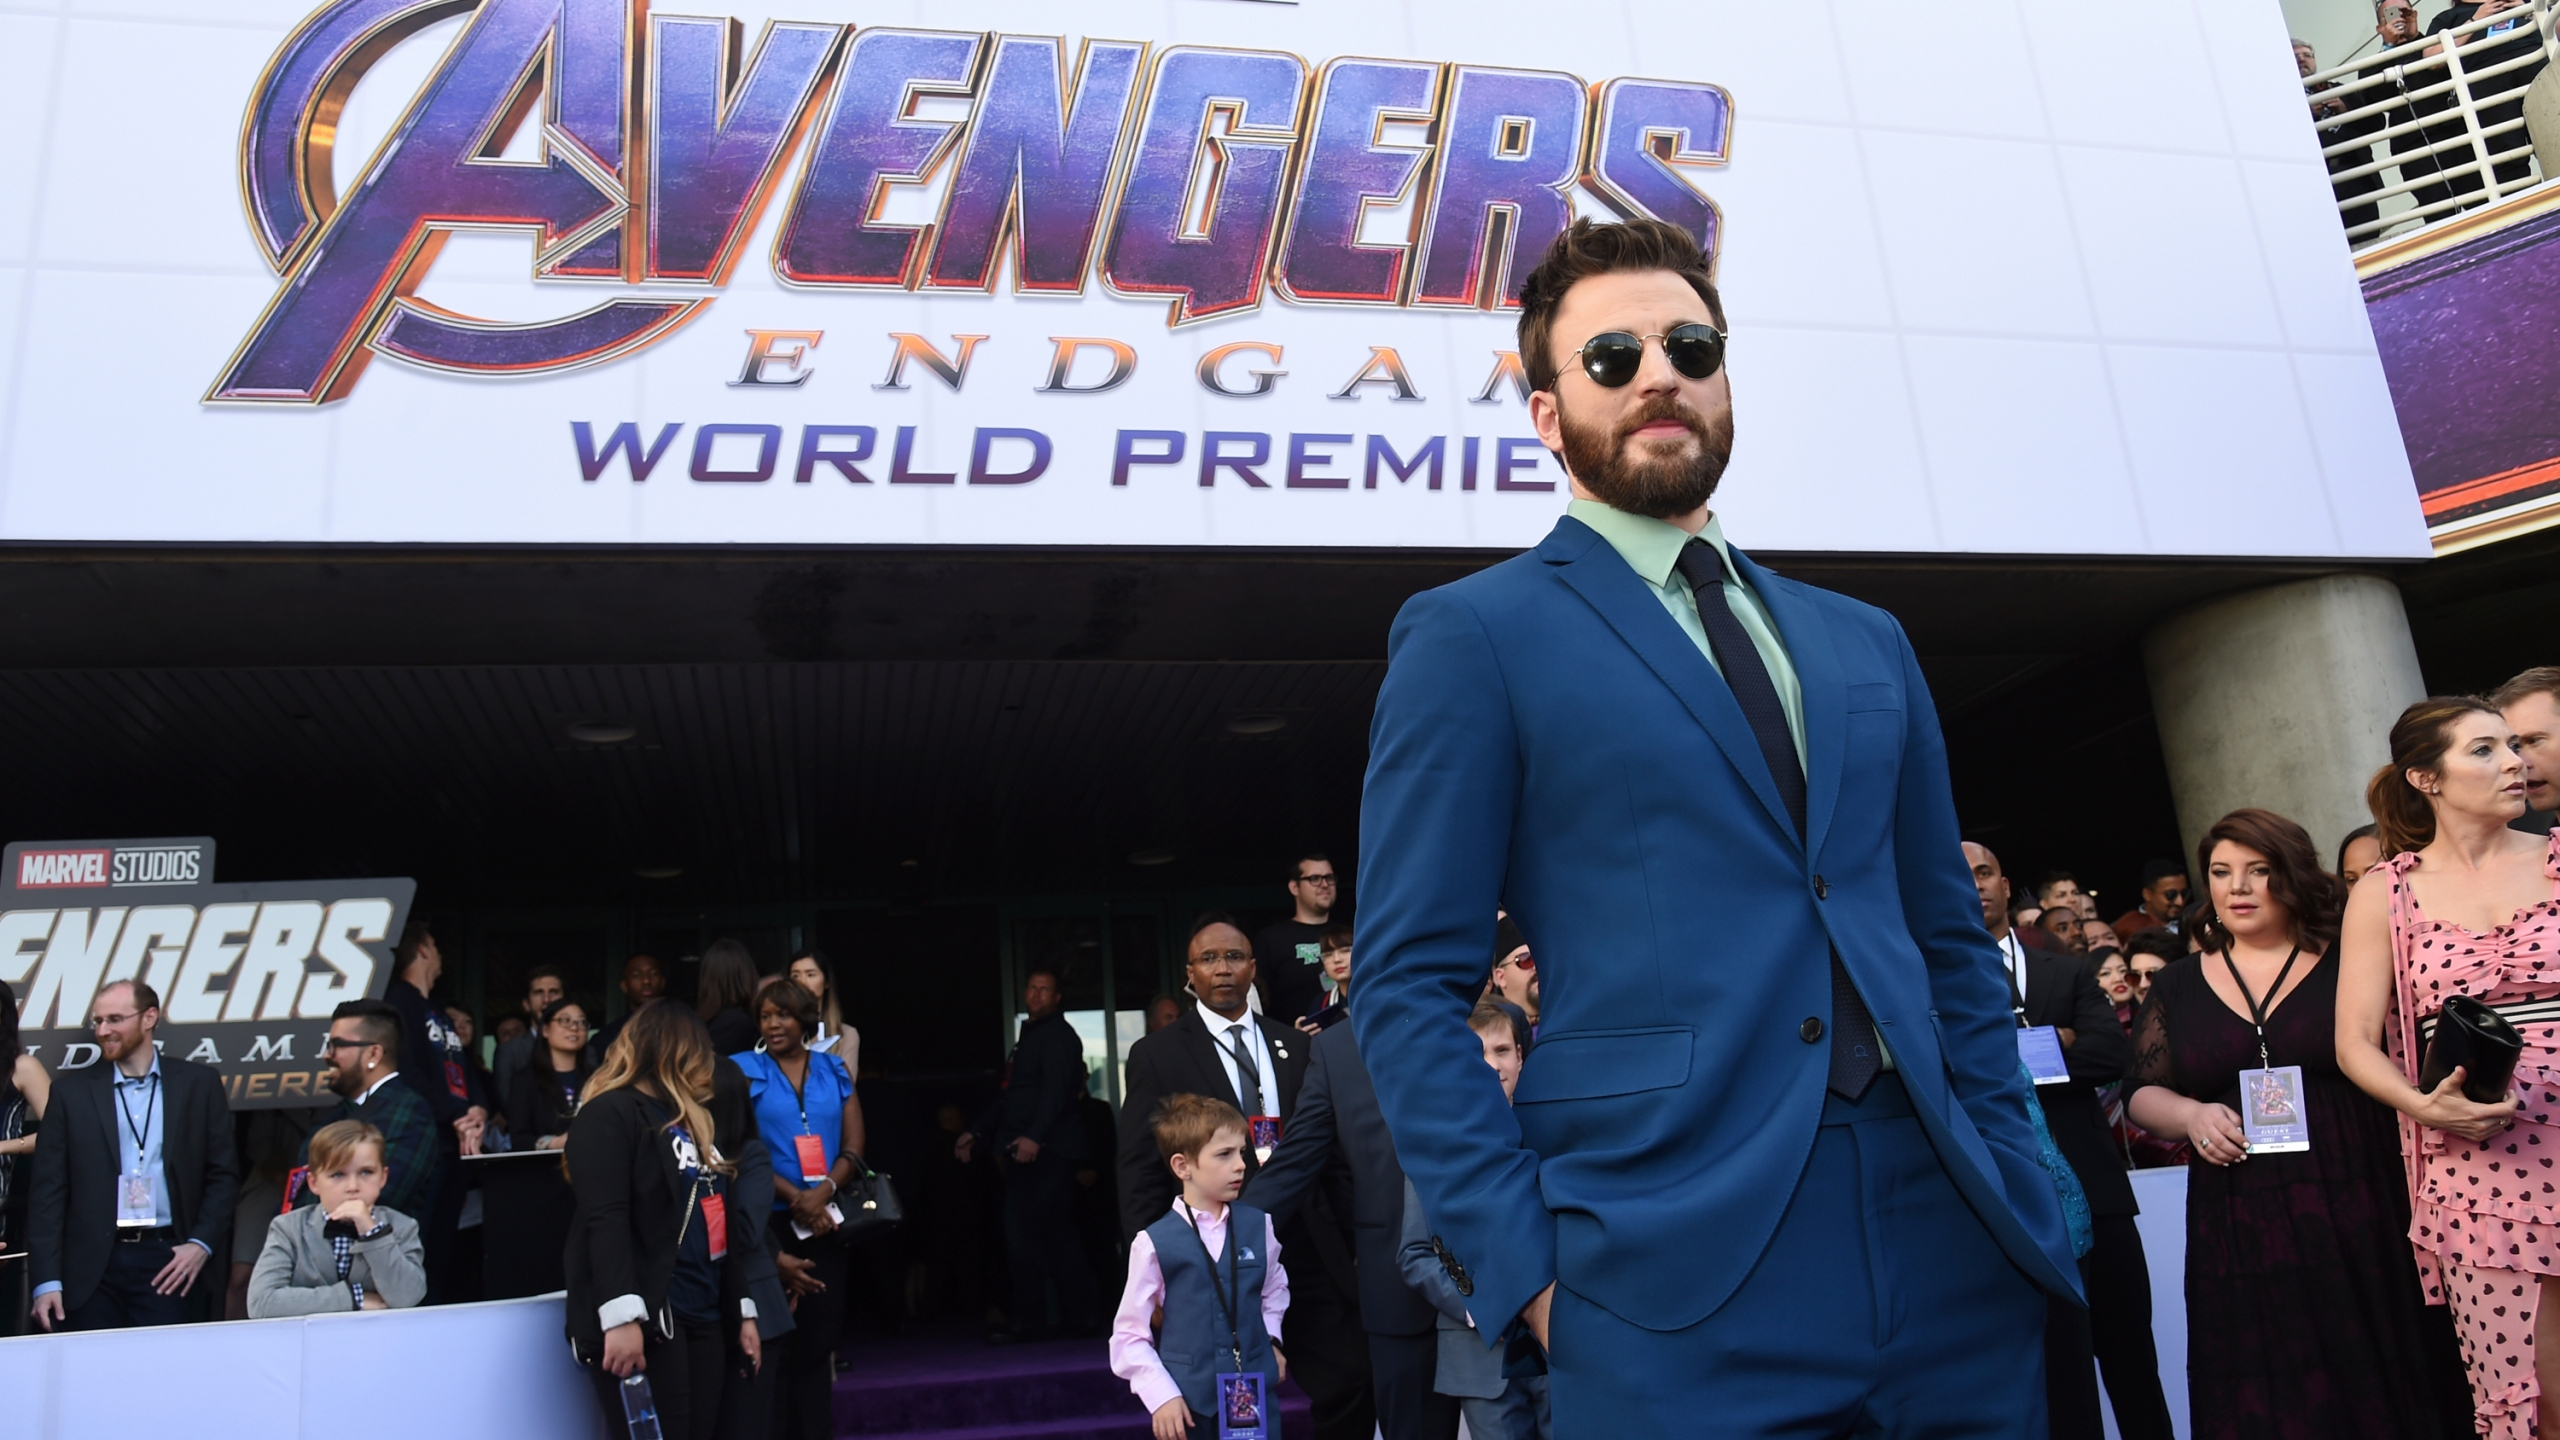 LA_Premiere_of__Avengers__Endgame__-_Red_Carpet_23577-159532.jpg57991888